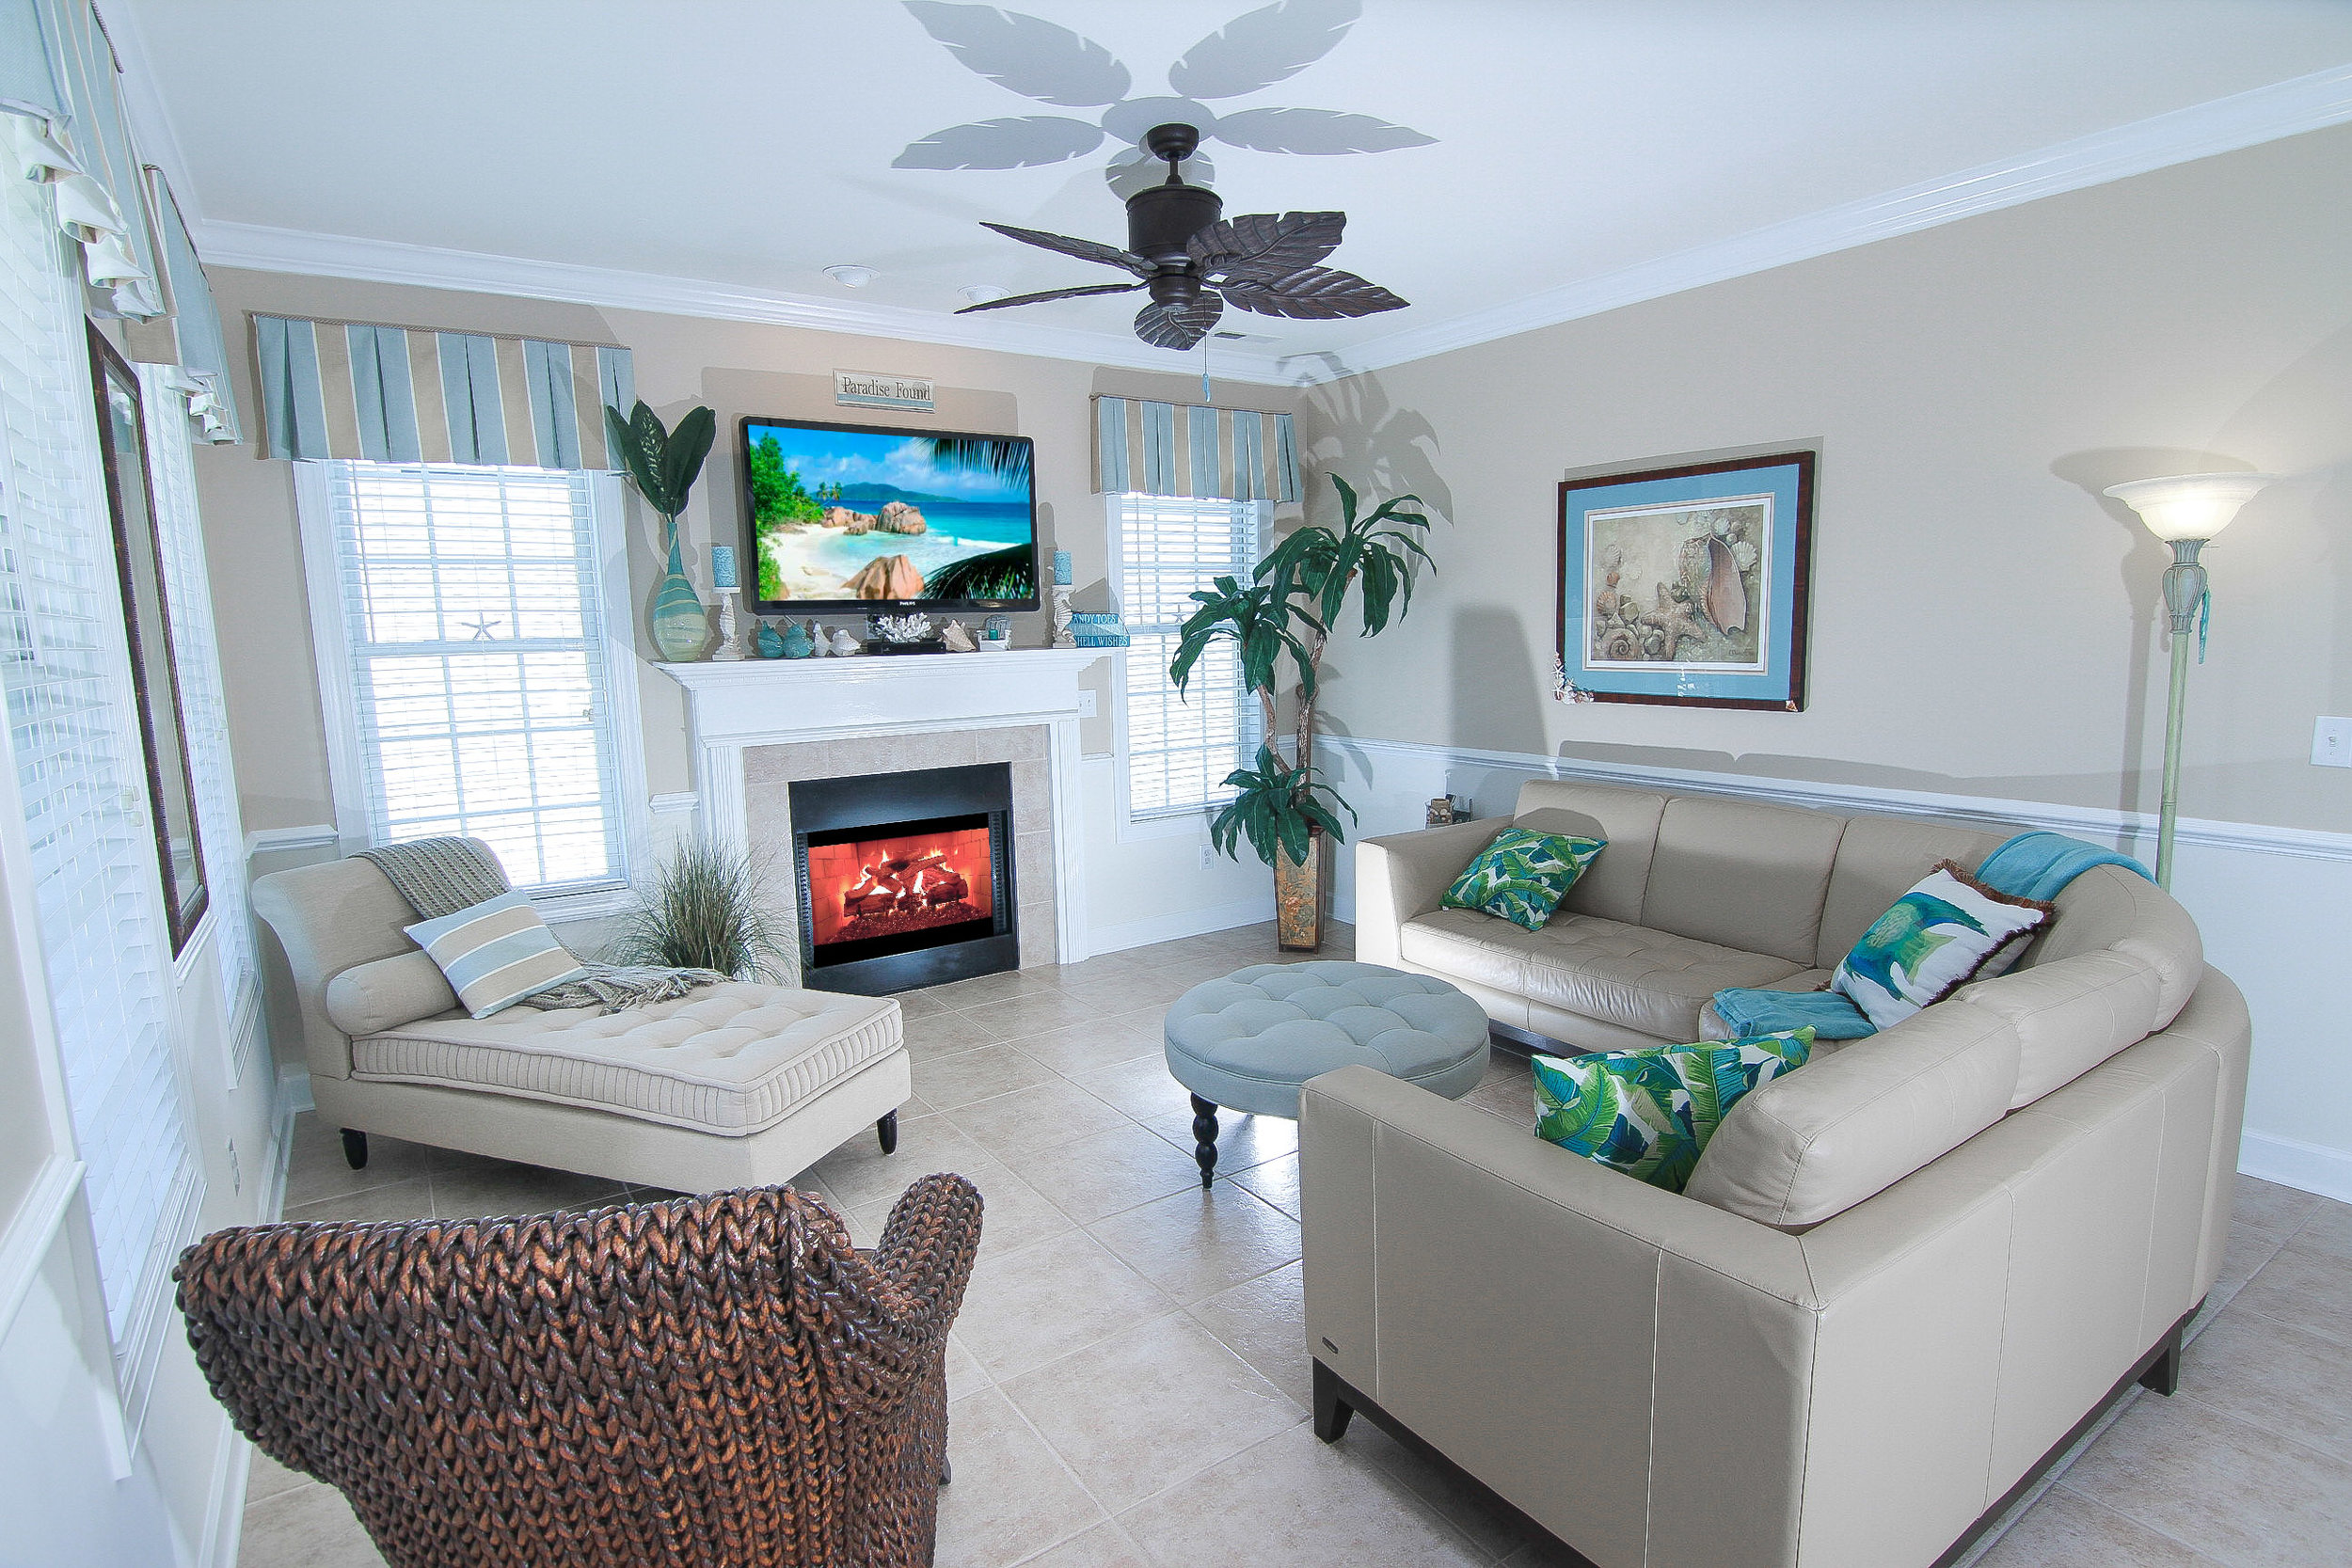 Myrtle beach real estate photographer ramona nicolae photography.jpg